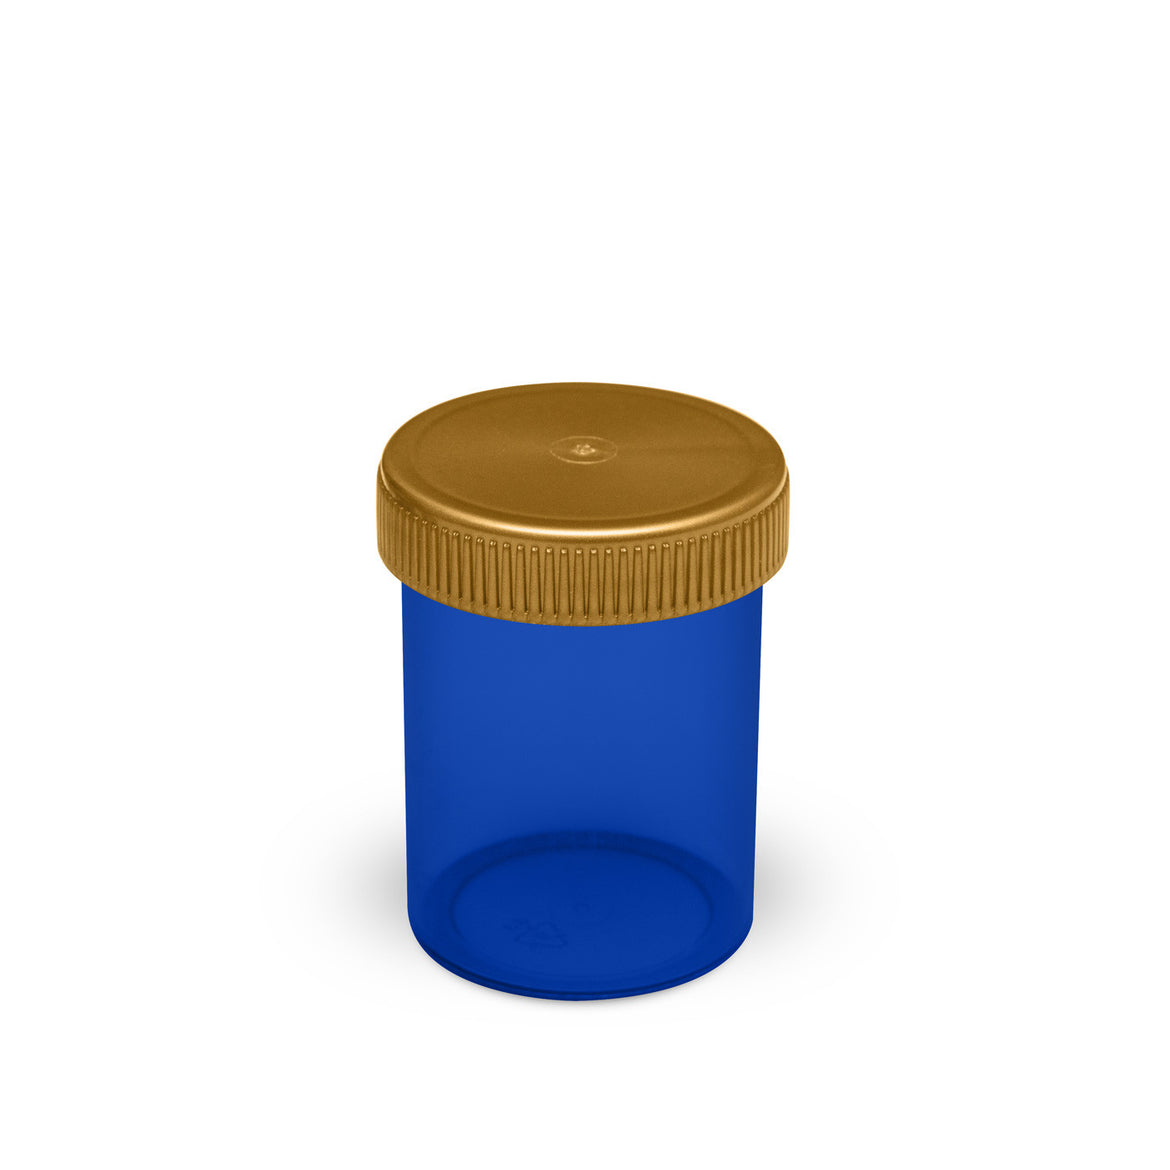 threaded airtight jars for storing and holding flower in translucent blue